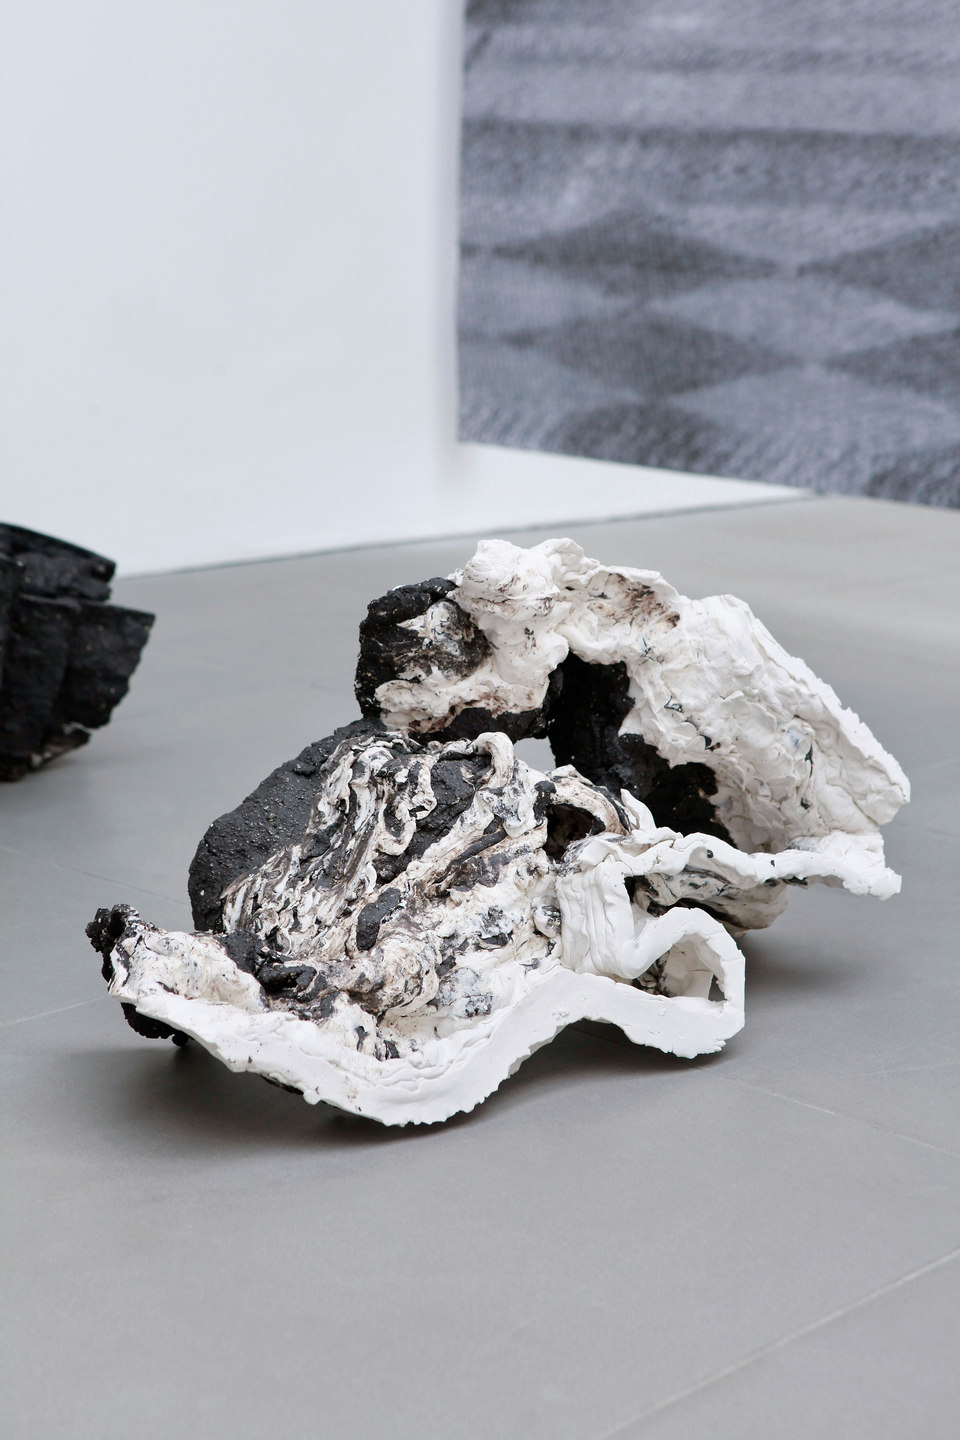 Peles Empire, Formation, 'formation 5', 2013, unglazed porcelain with black grog, h. 60 x w. 29 x d. 32 cm, Cell Project Space